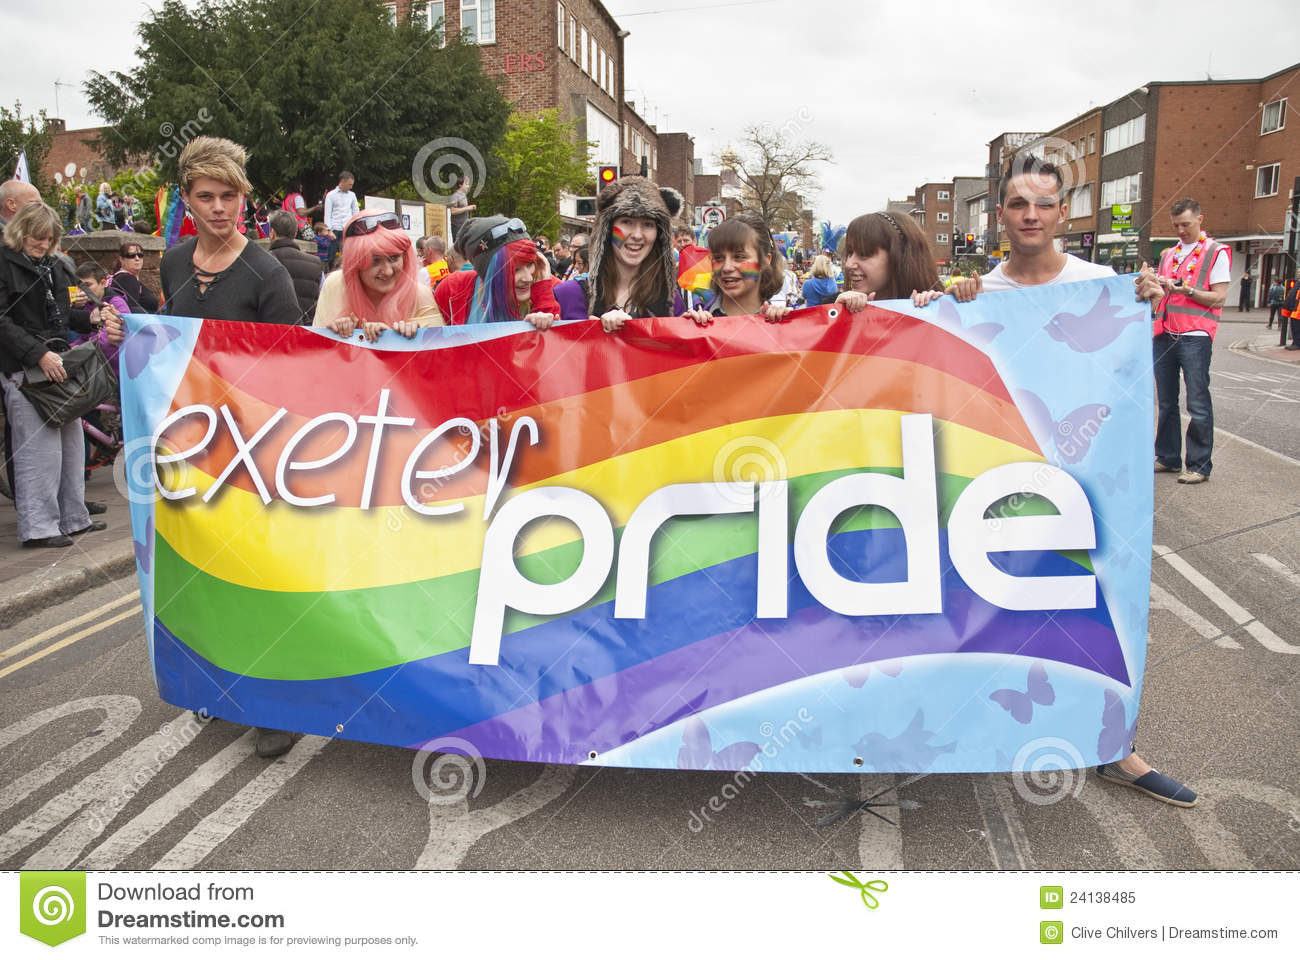 exeter gay personals Gaydar is one of the top dating sites for gay and bisexual men millions of guys like you, looking for friendships, dating and relationships share your interests and hobbies and gaydar will.